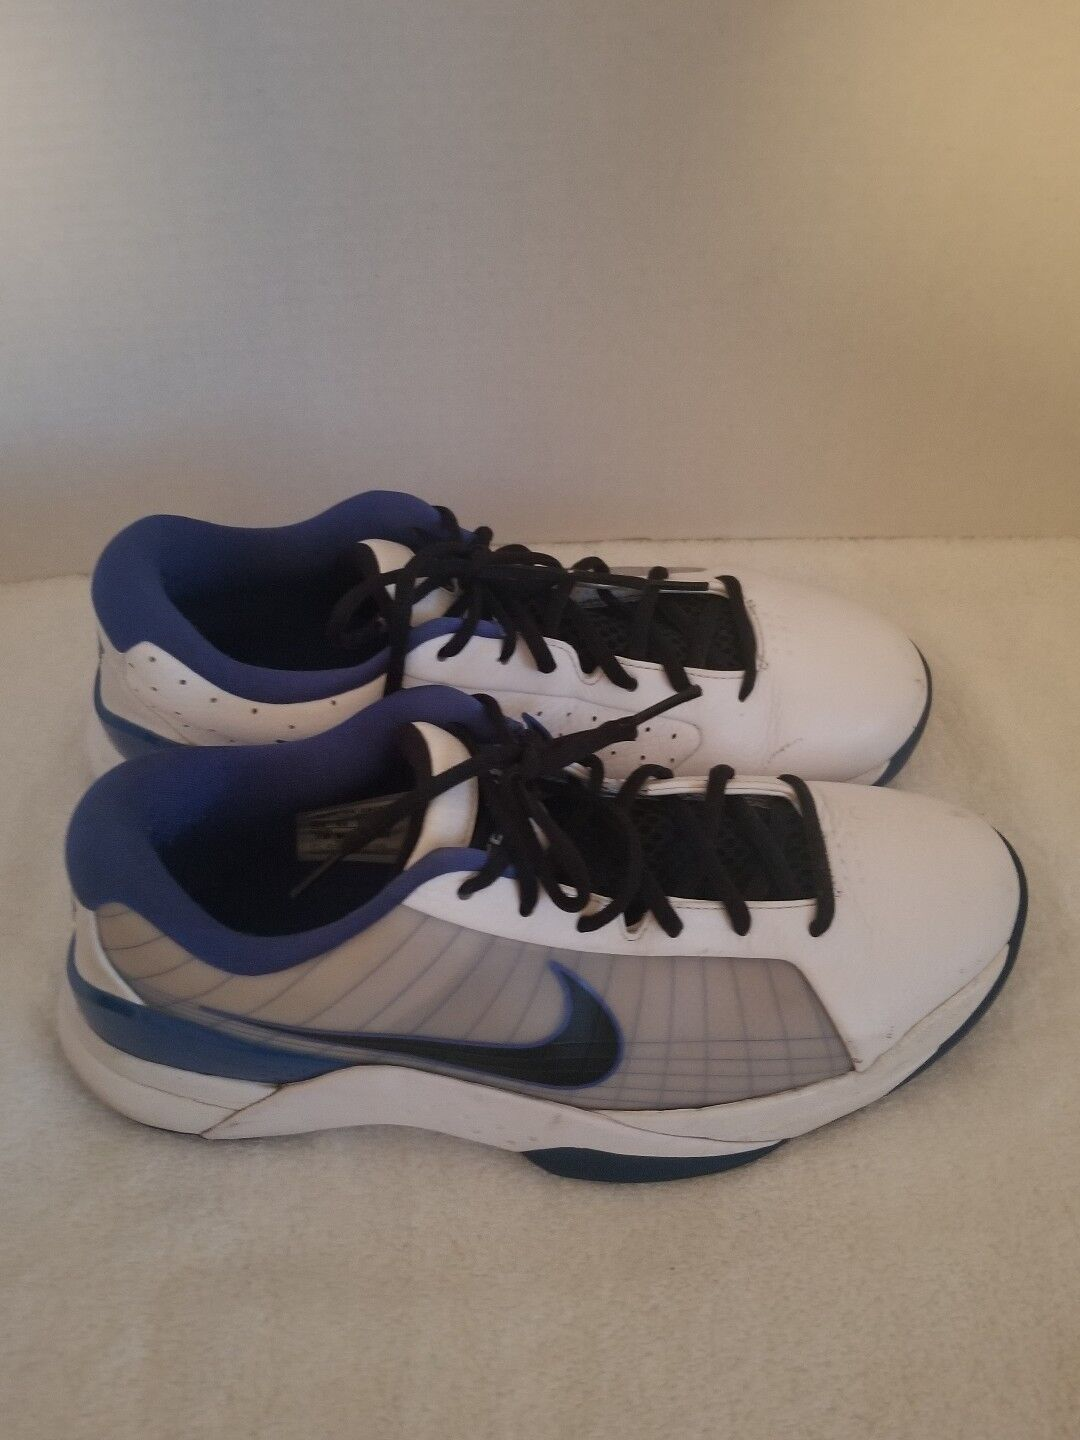 Mens nike shoes size 10.5 preowned The latest discount shoes for men and women